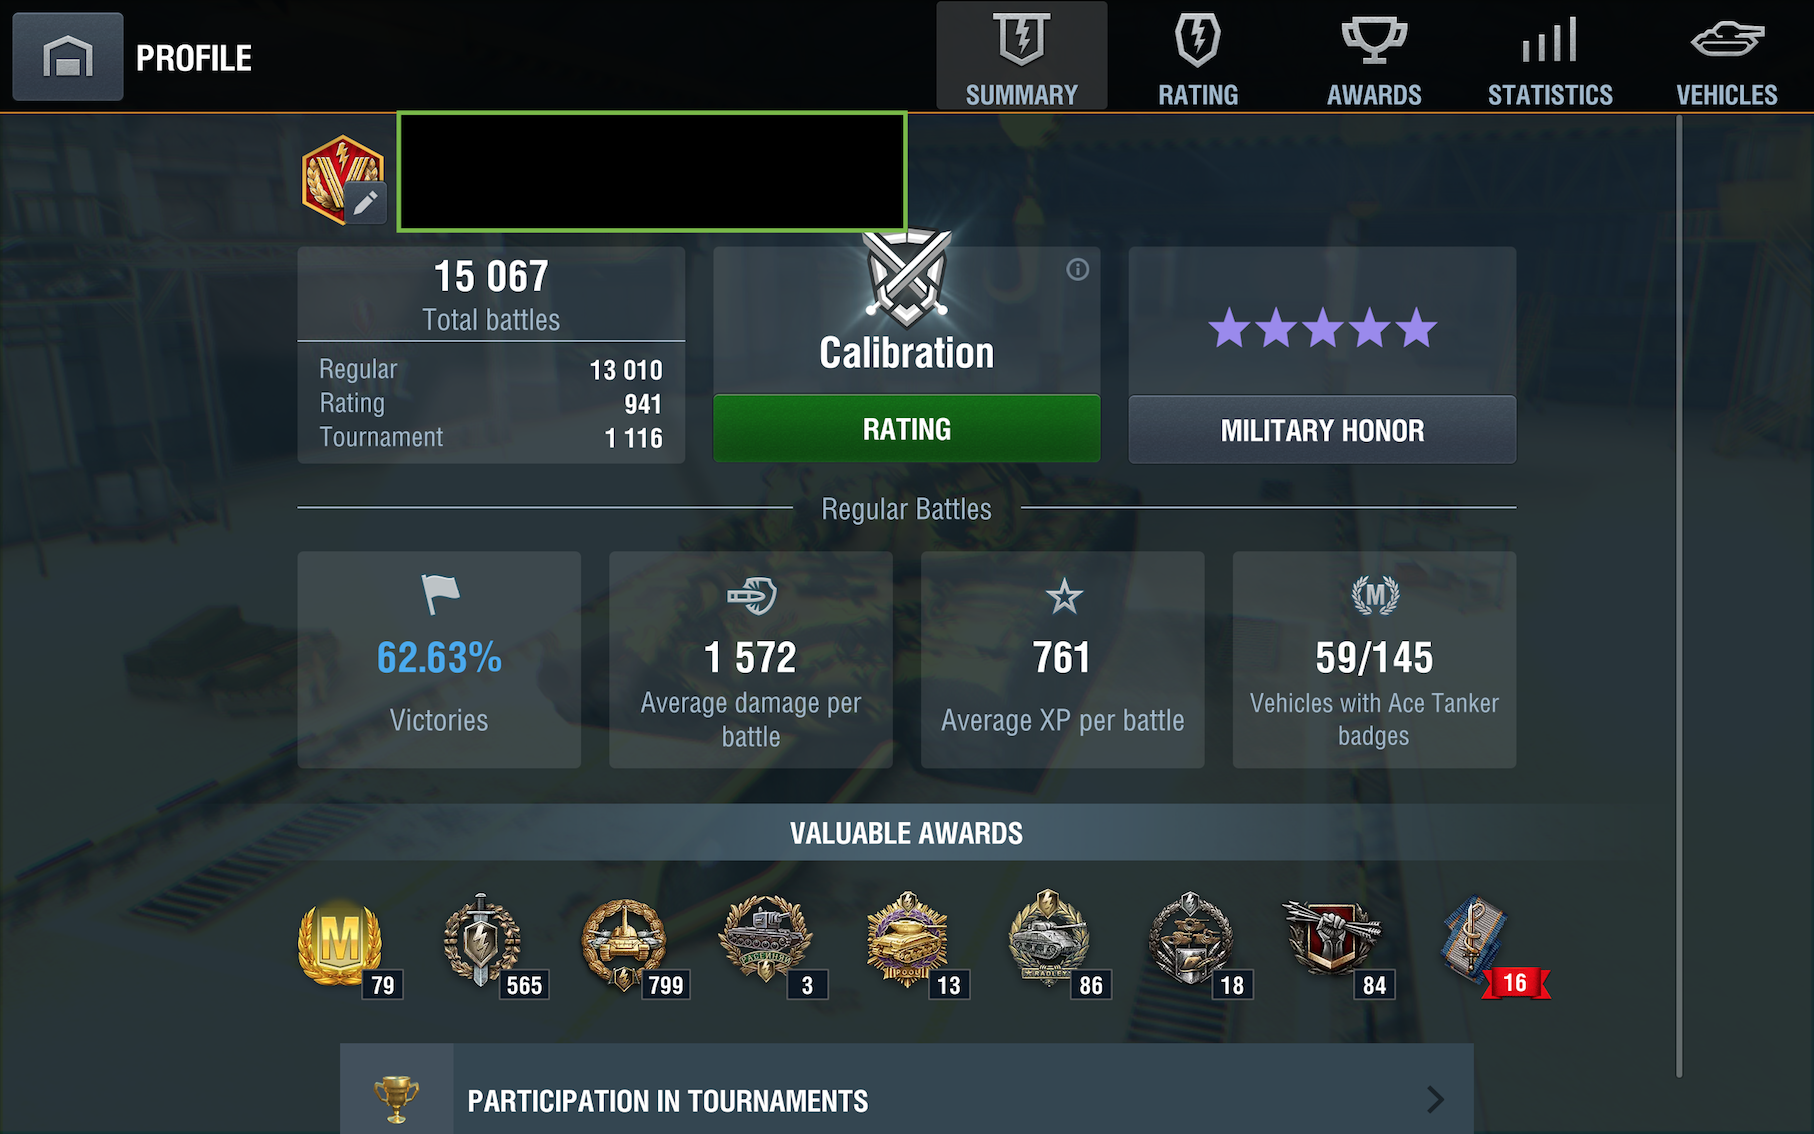 GREAT WOT BLITZ ACC ! GREAT STATS ! ACC MADE FOR TOURNAMENTS | ID